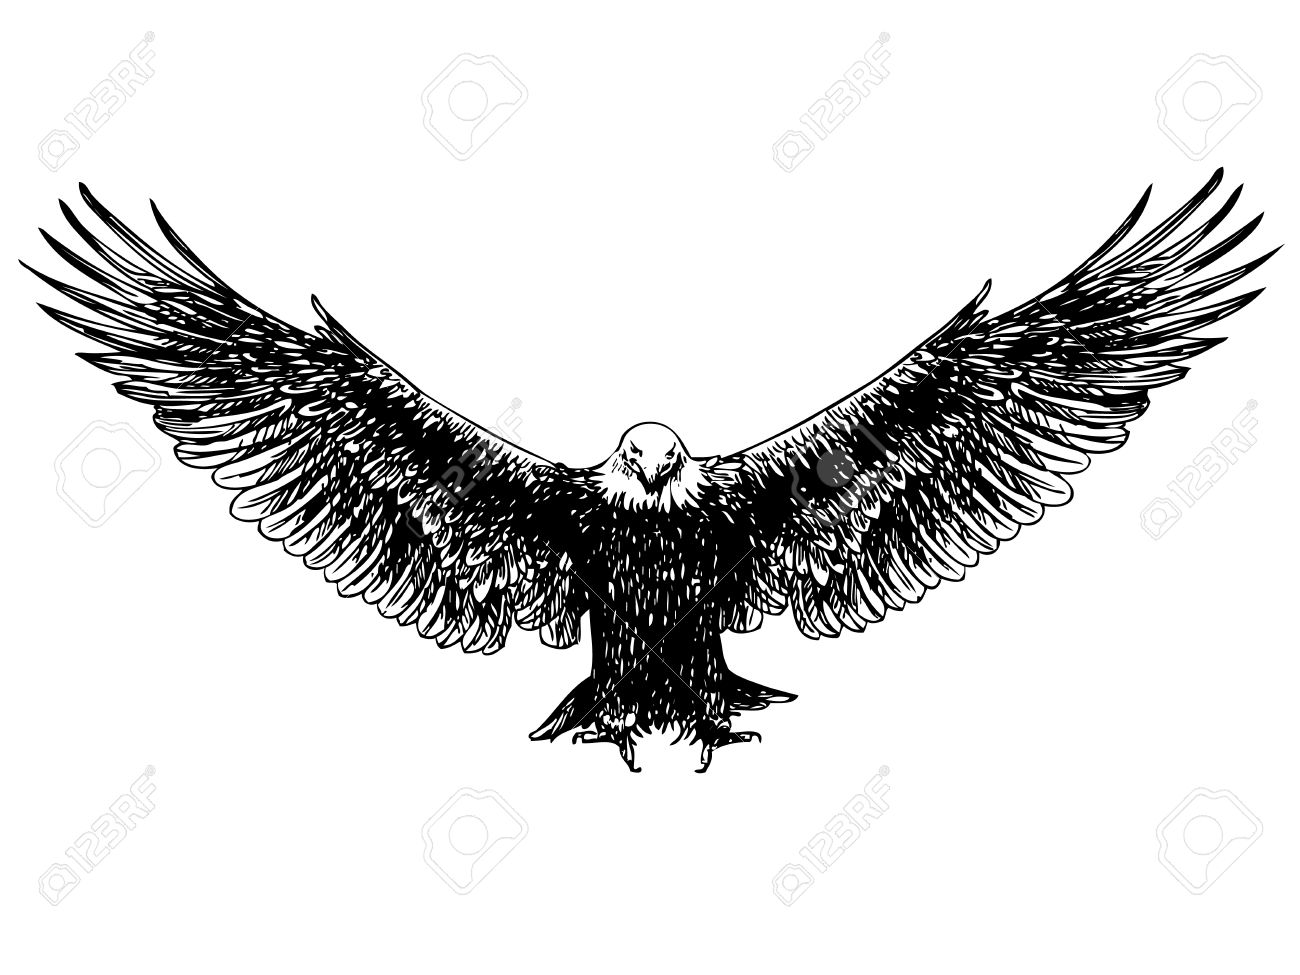 Eagle simple line drawing - crazywidow.info